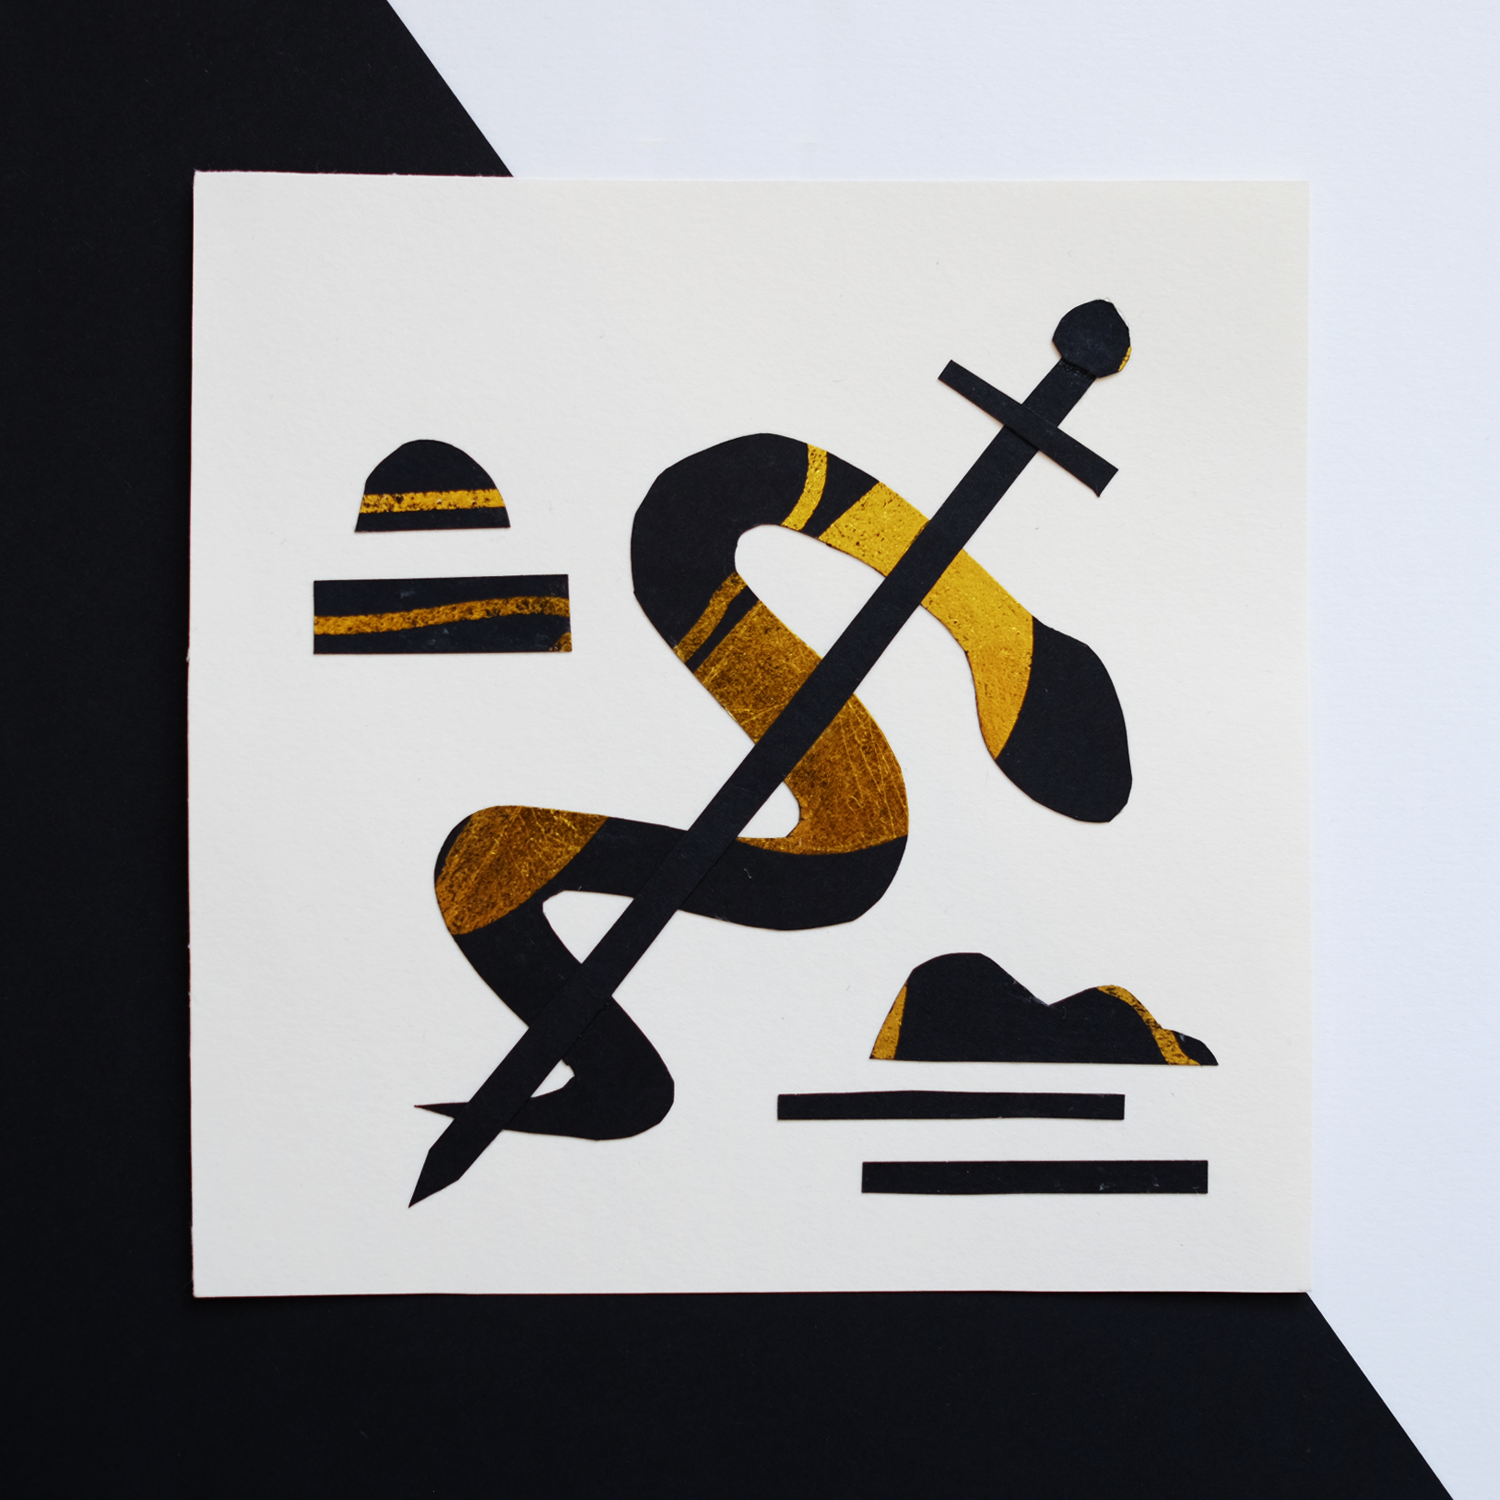 Drawing with scissors, a collage depicting a snake and sword made out of black paper covered with gold foil by Monsie Monika Jurczyk